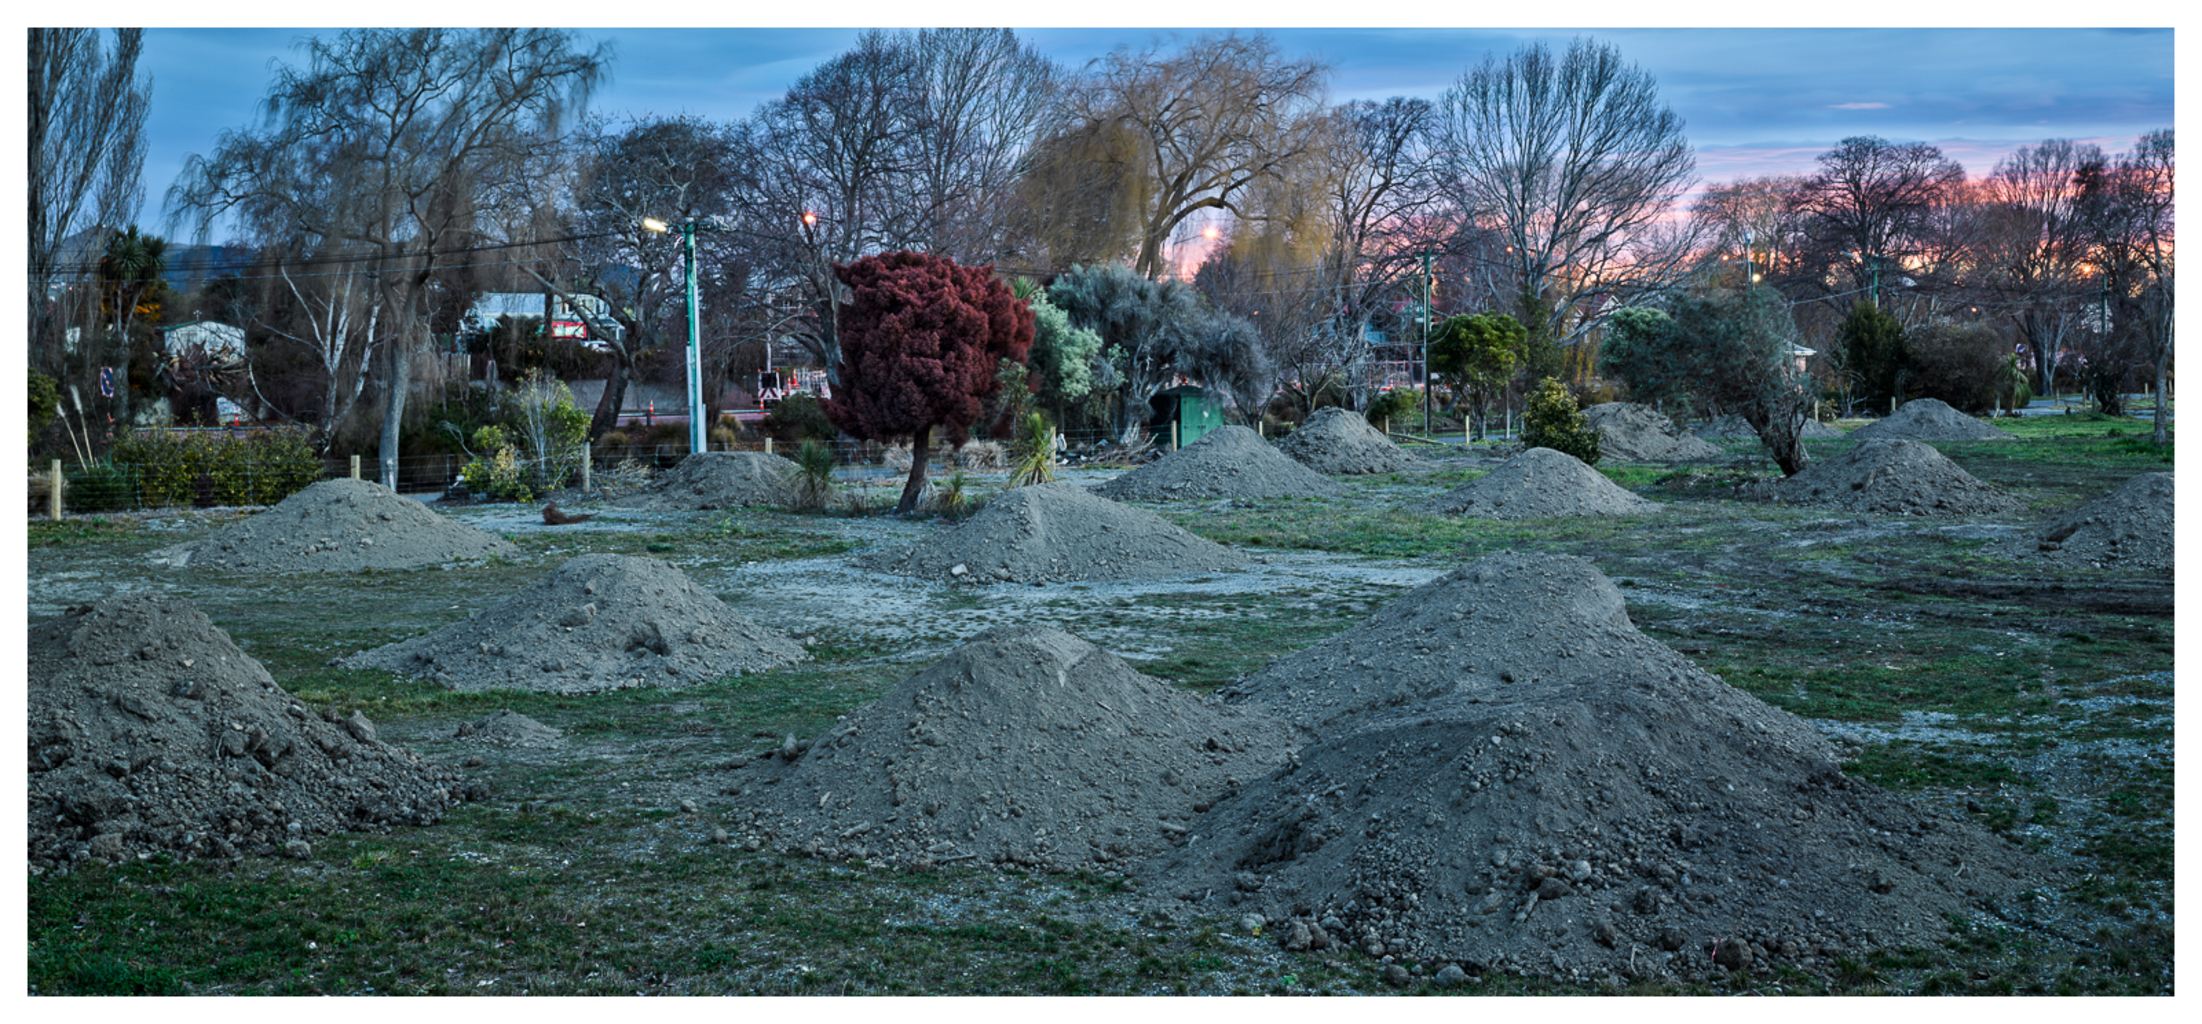 Avonside / Richmond Residential Red Zone, River Road, Christchurch, 2015. New soil for levelling and replanting of cleared land.